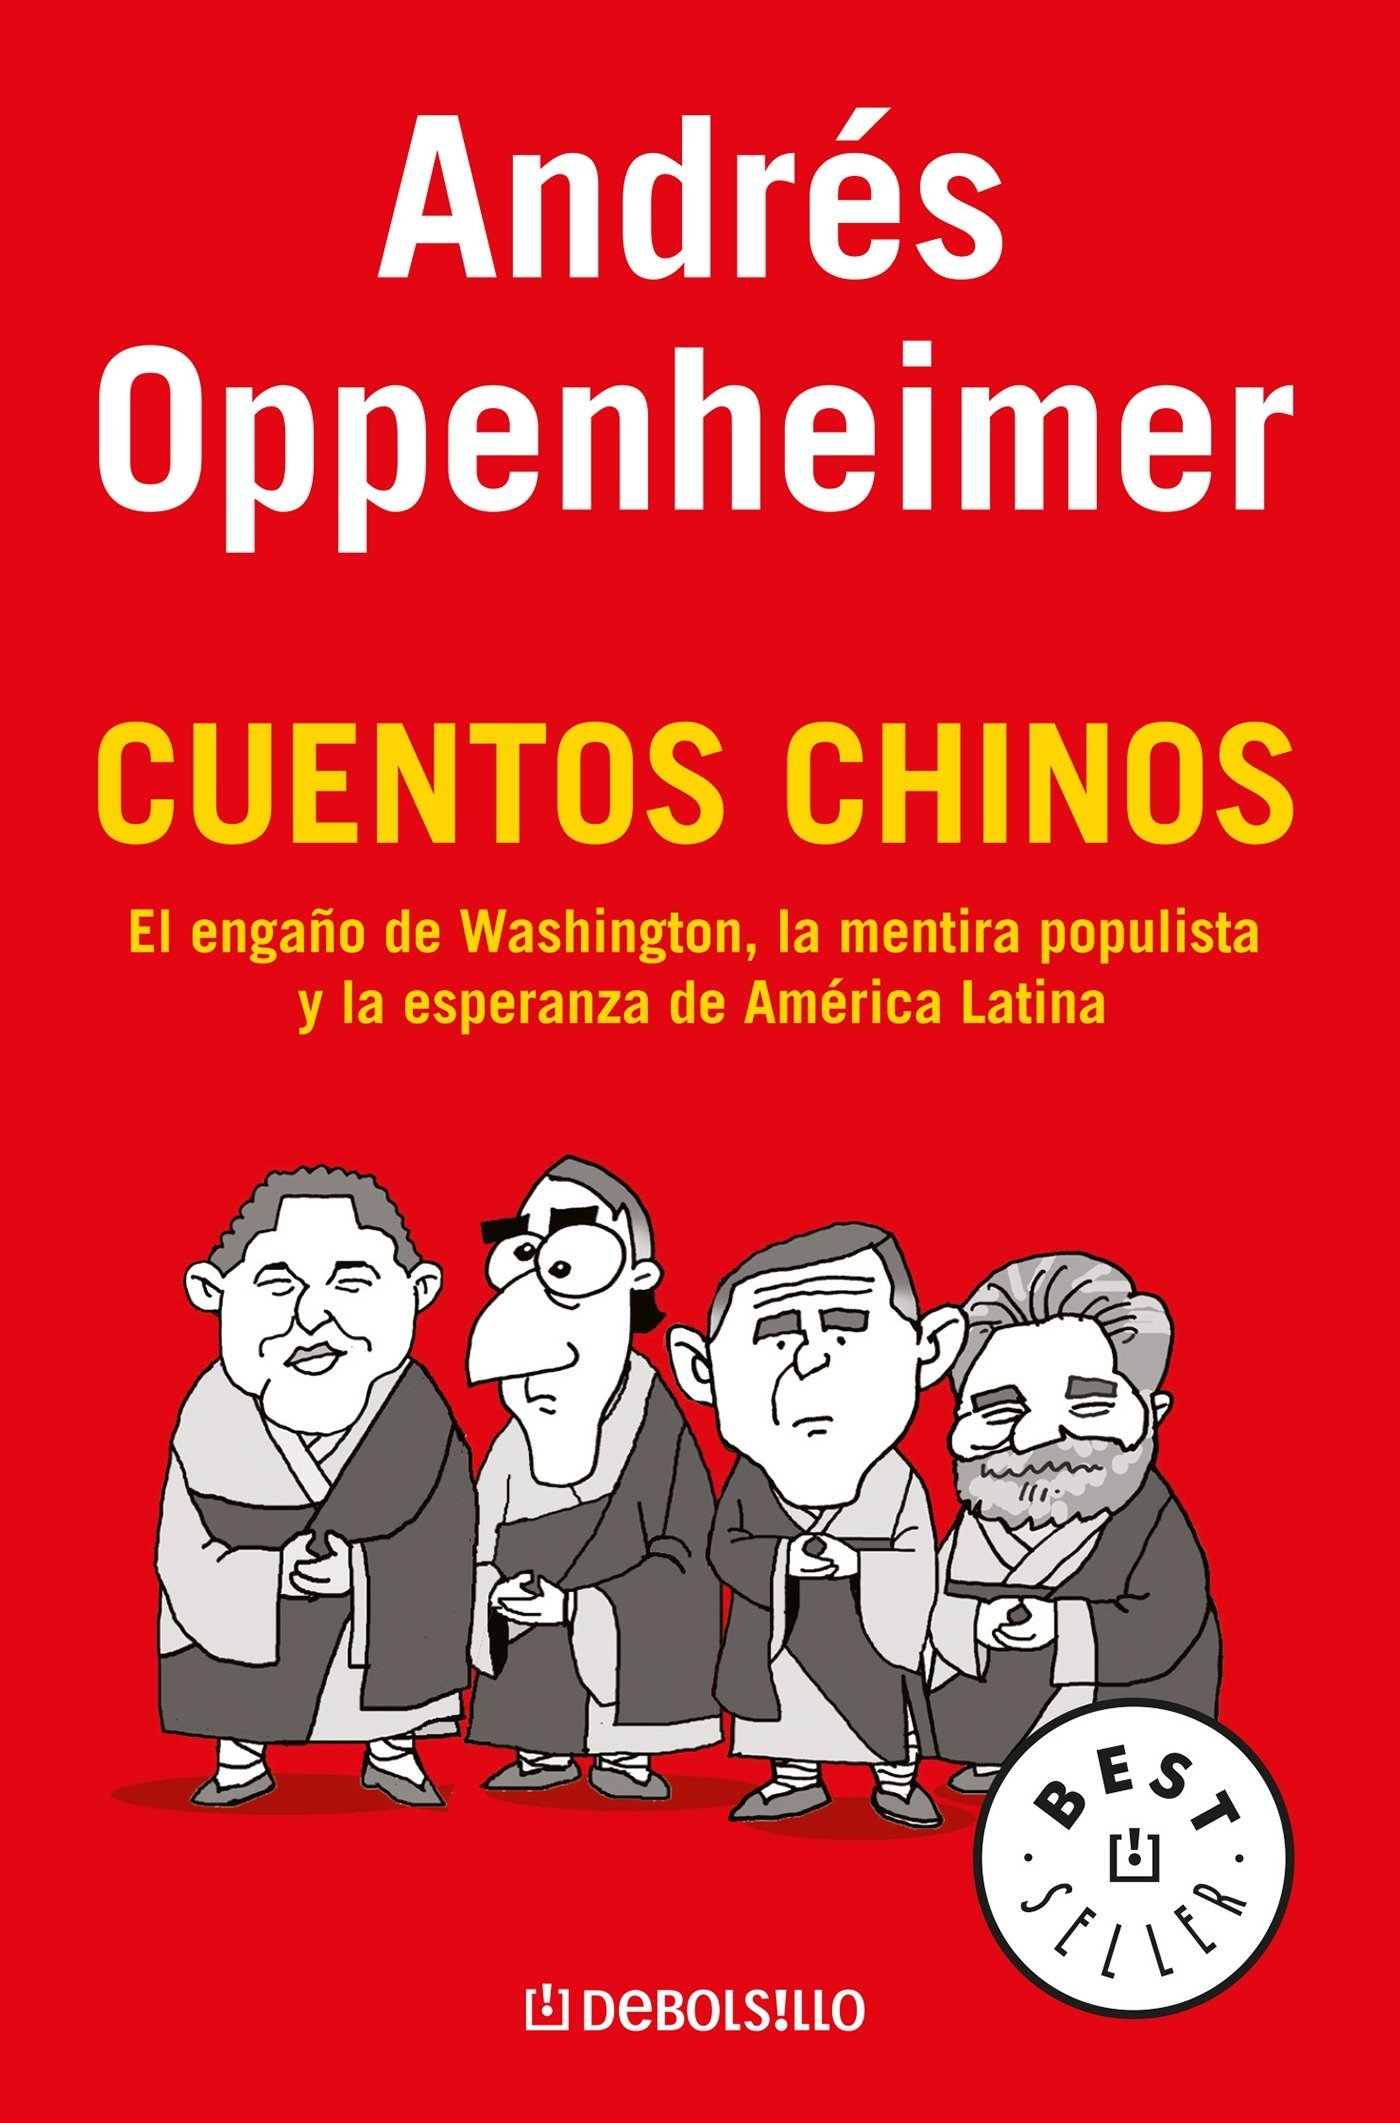 Cuentos chinos spanish edition andres oppenheimer 9789707800816 cuentos chinos spanish edition andres oppenheimer 9789707800816 amazon books fandeluxe Choice Image